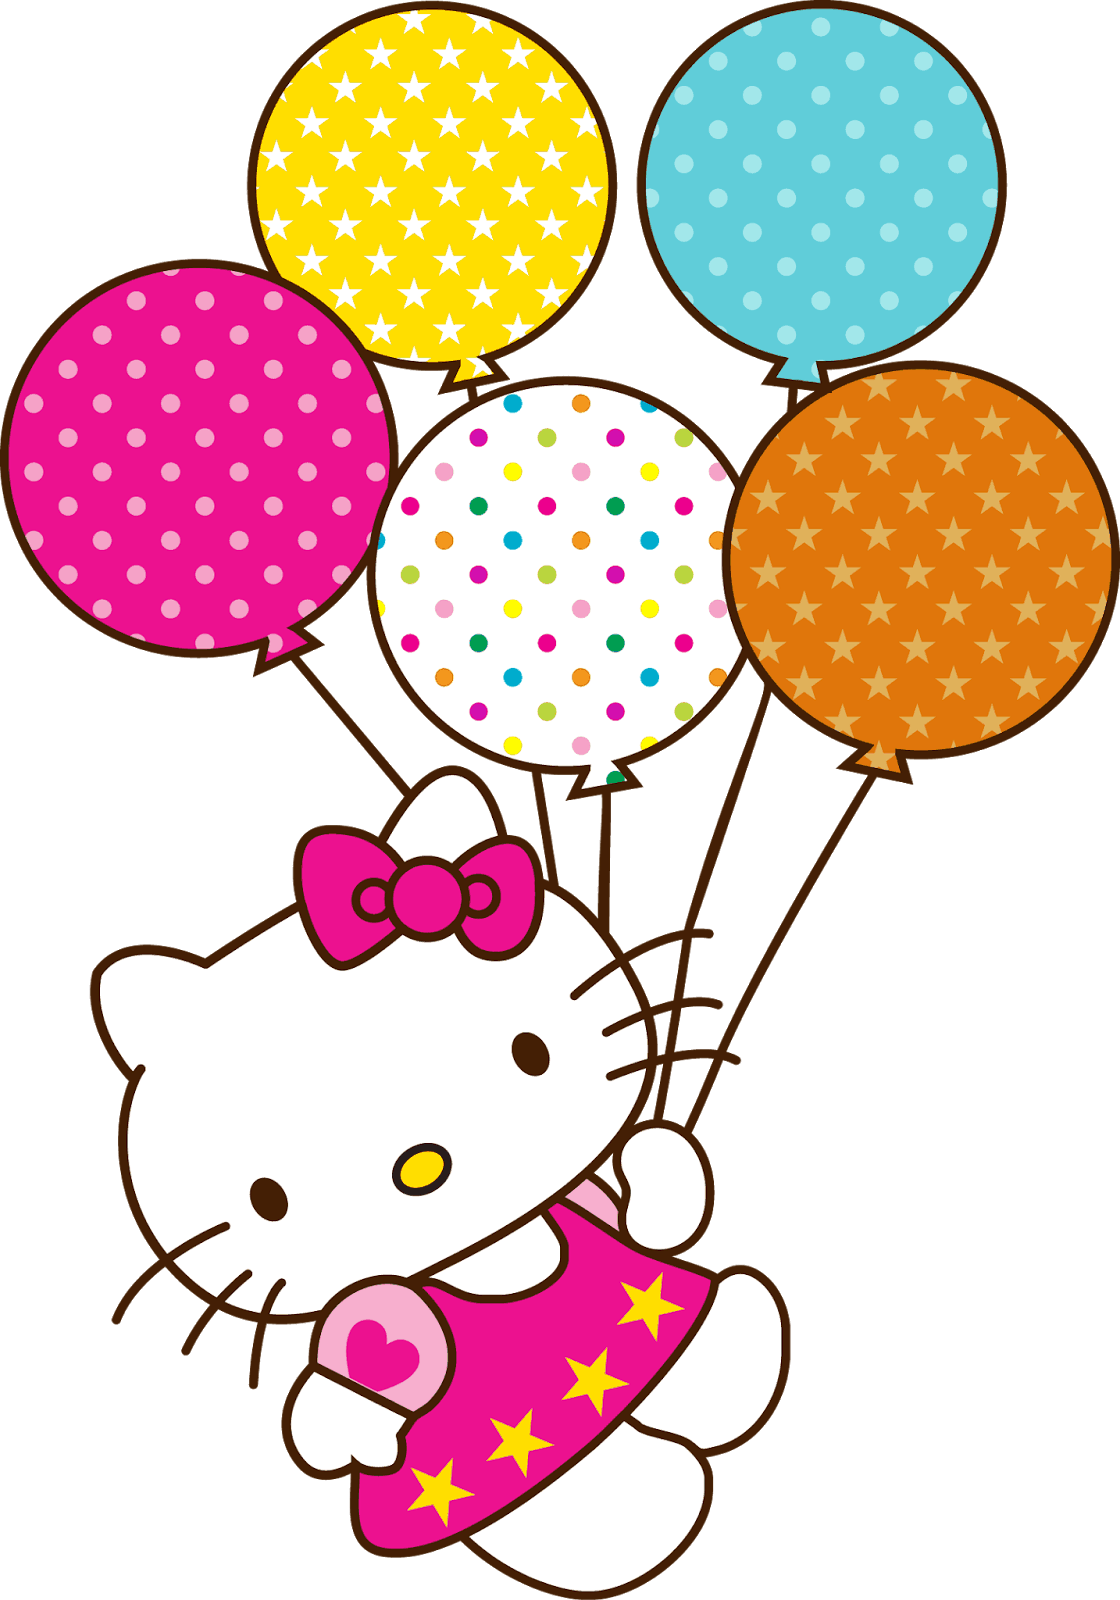 Cat birthday clipart vector royalty free Pin by Tisha Coetzee on GRAPHICS BOARD 2 - CATS AND DOGS | Pinterest ... vector royalty free